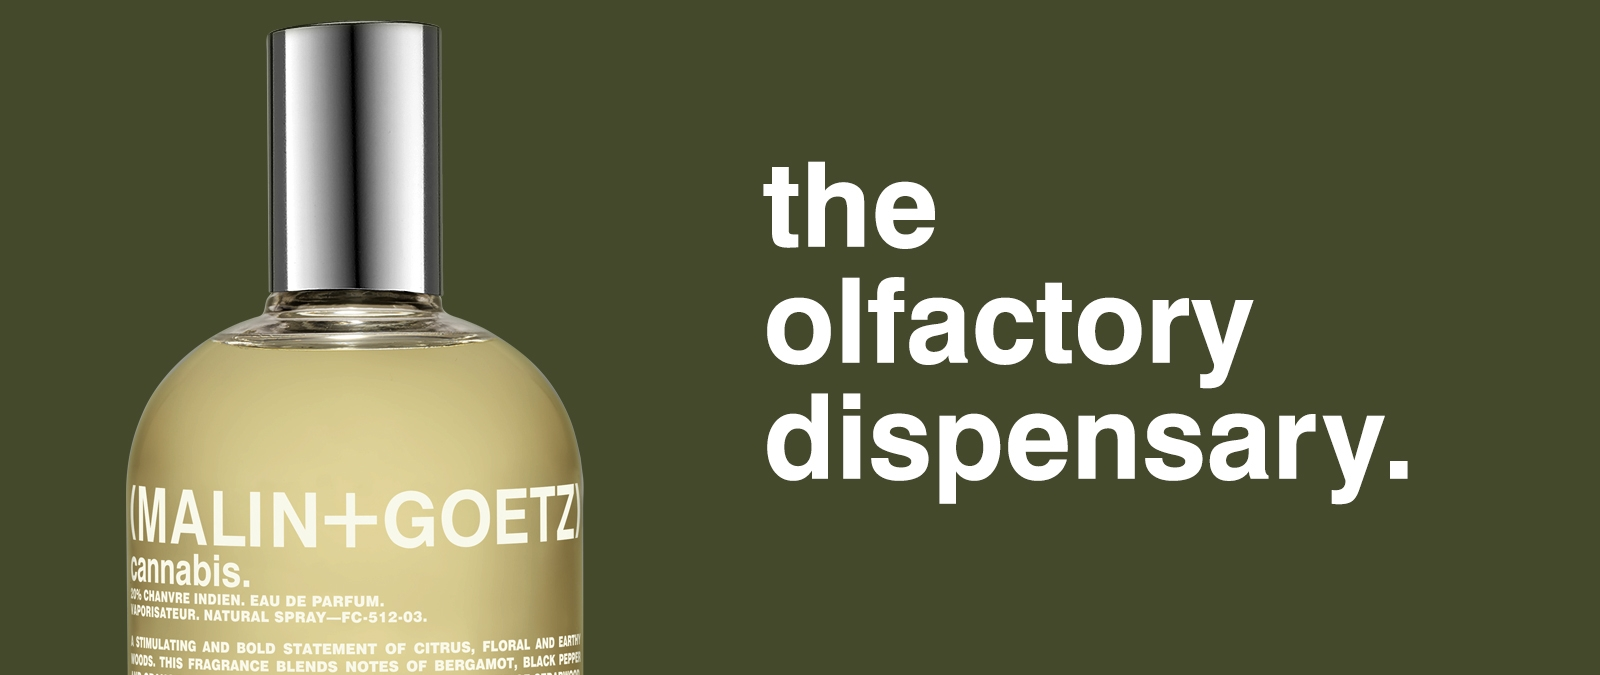 the olfactory dispensary.